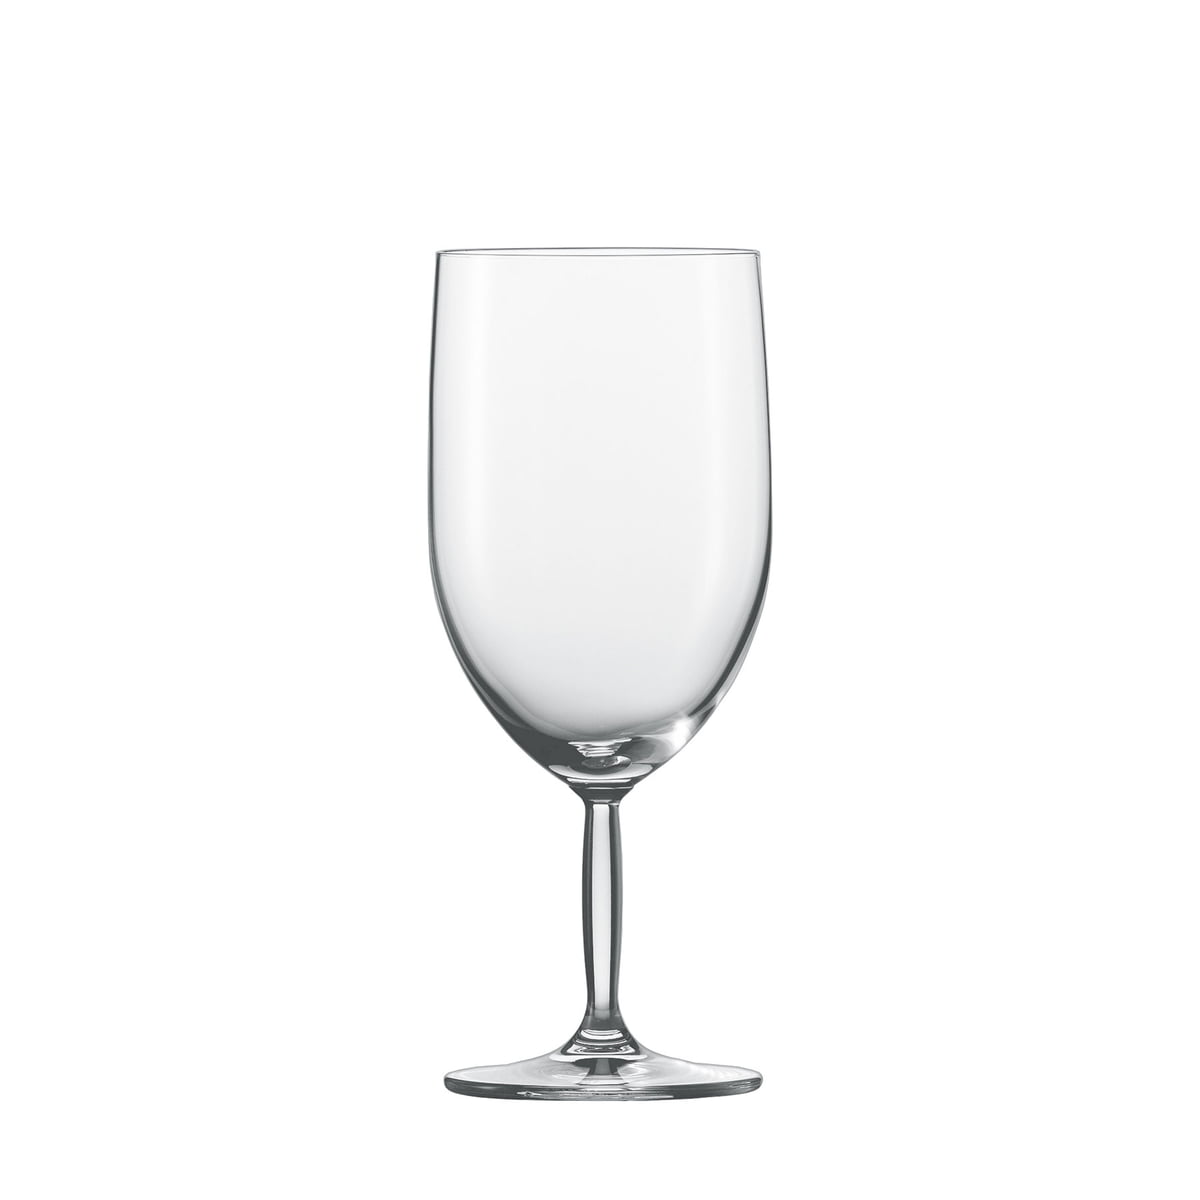 buy the diva water glass by schott zwiesel. Black Bedroom Furniture Sets. Home Design Ideas